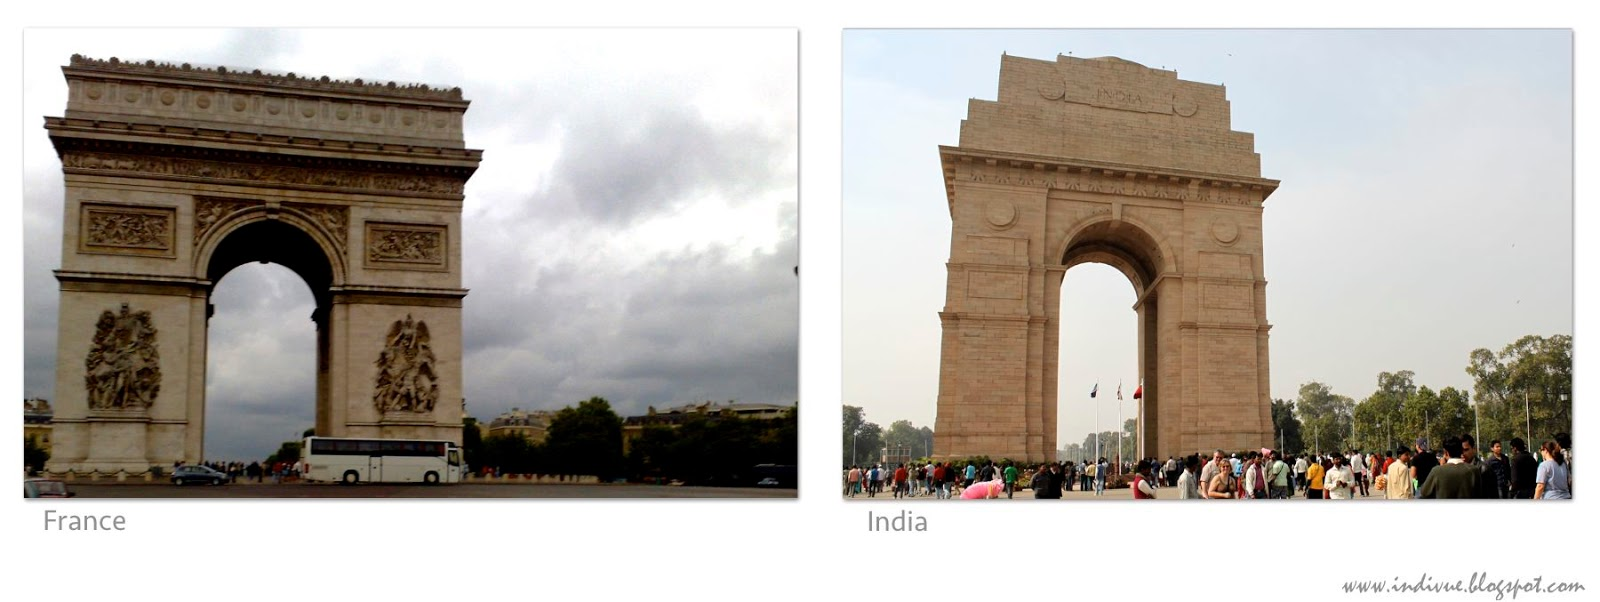 Riemukaari ja India Gate